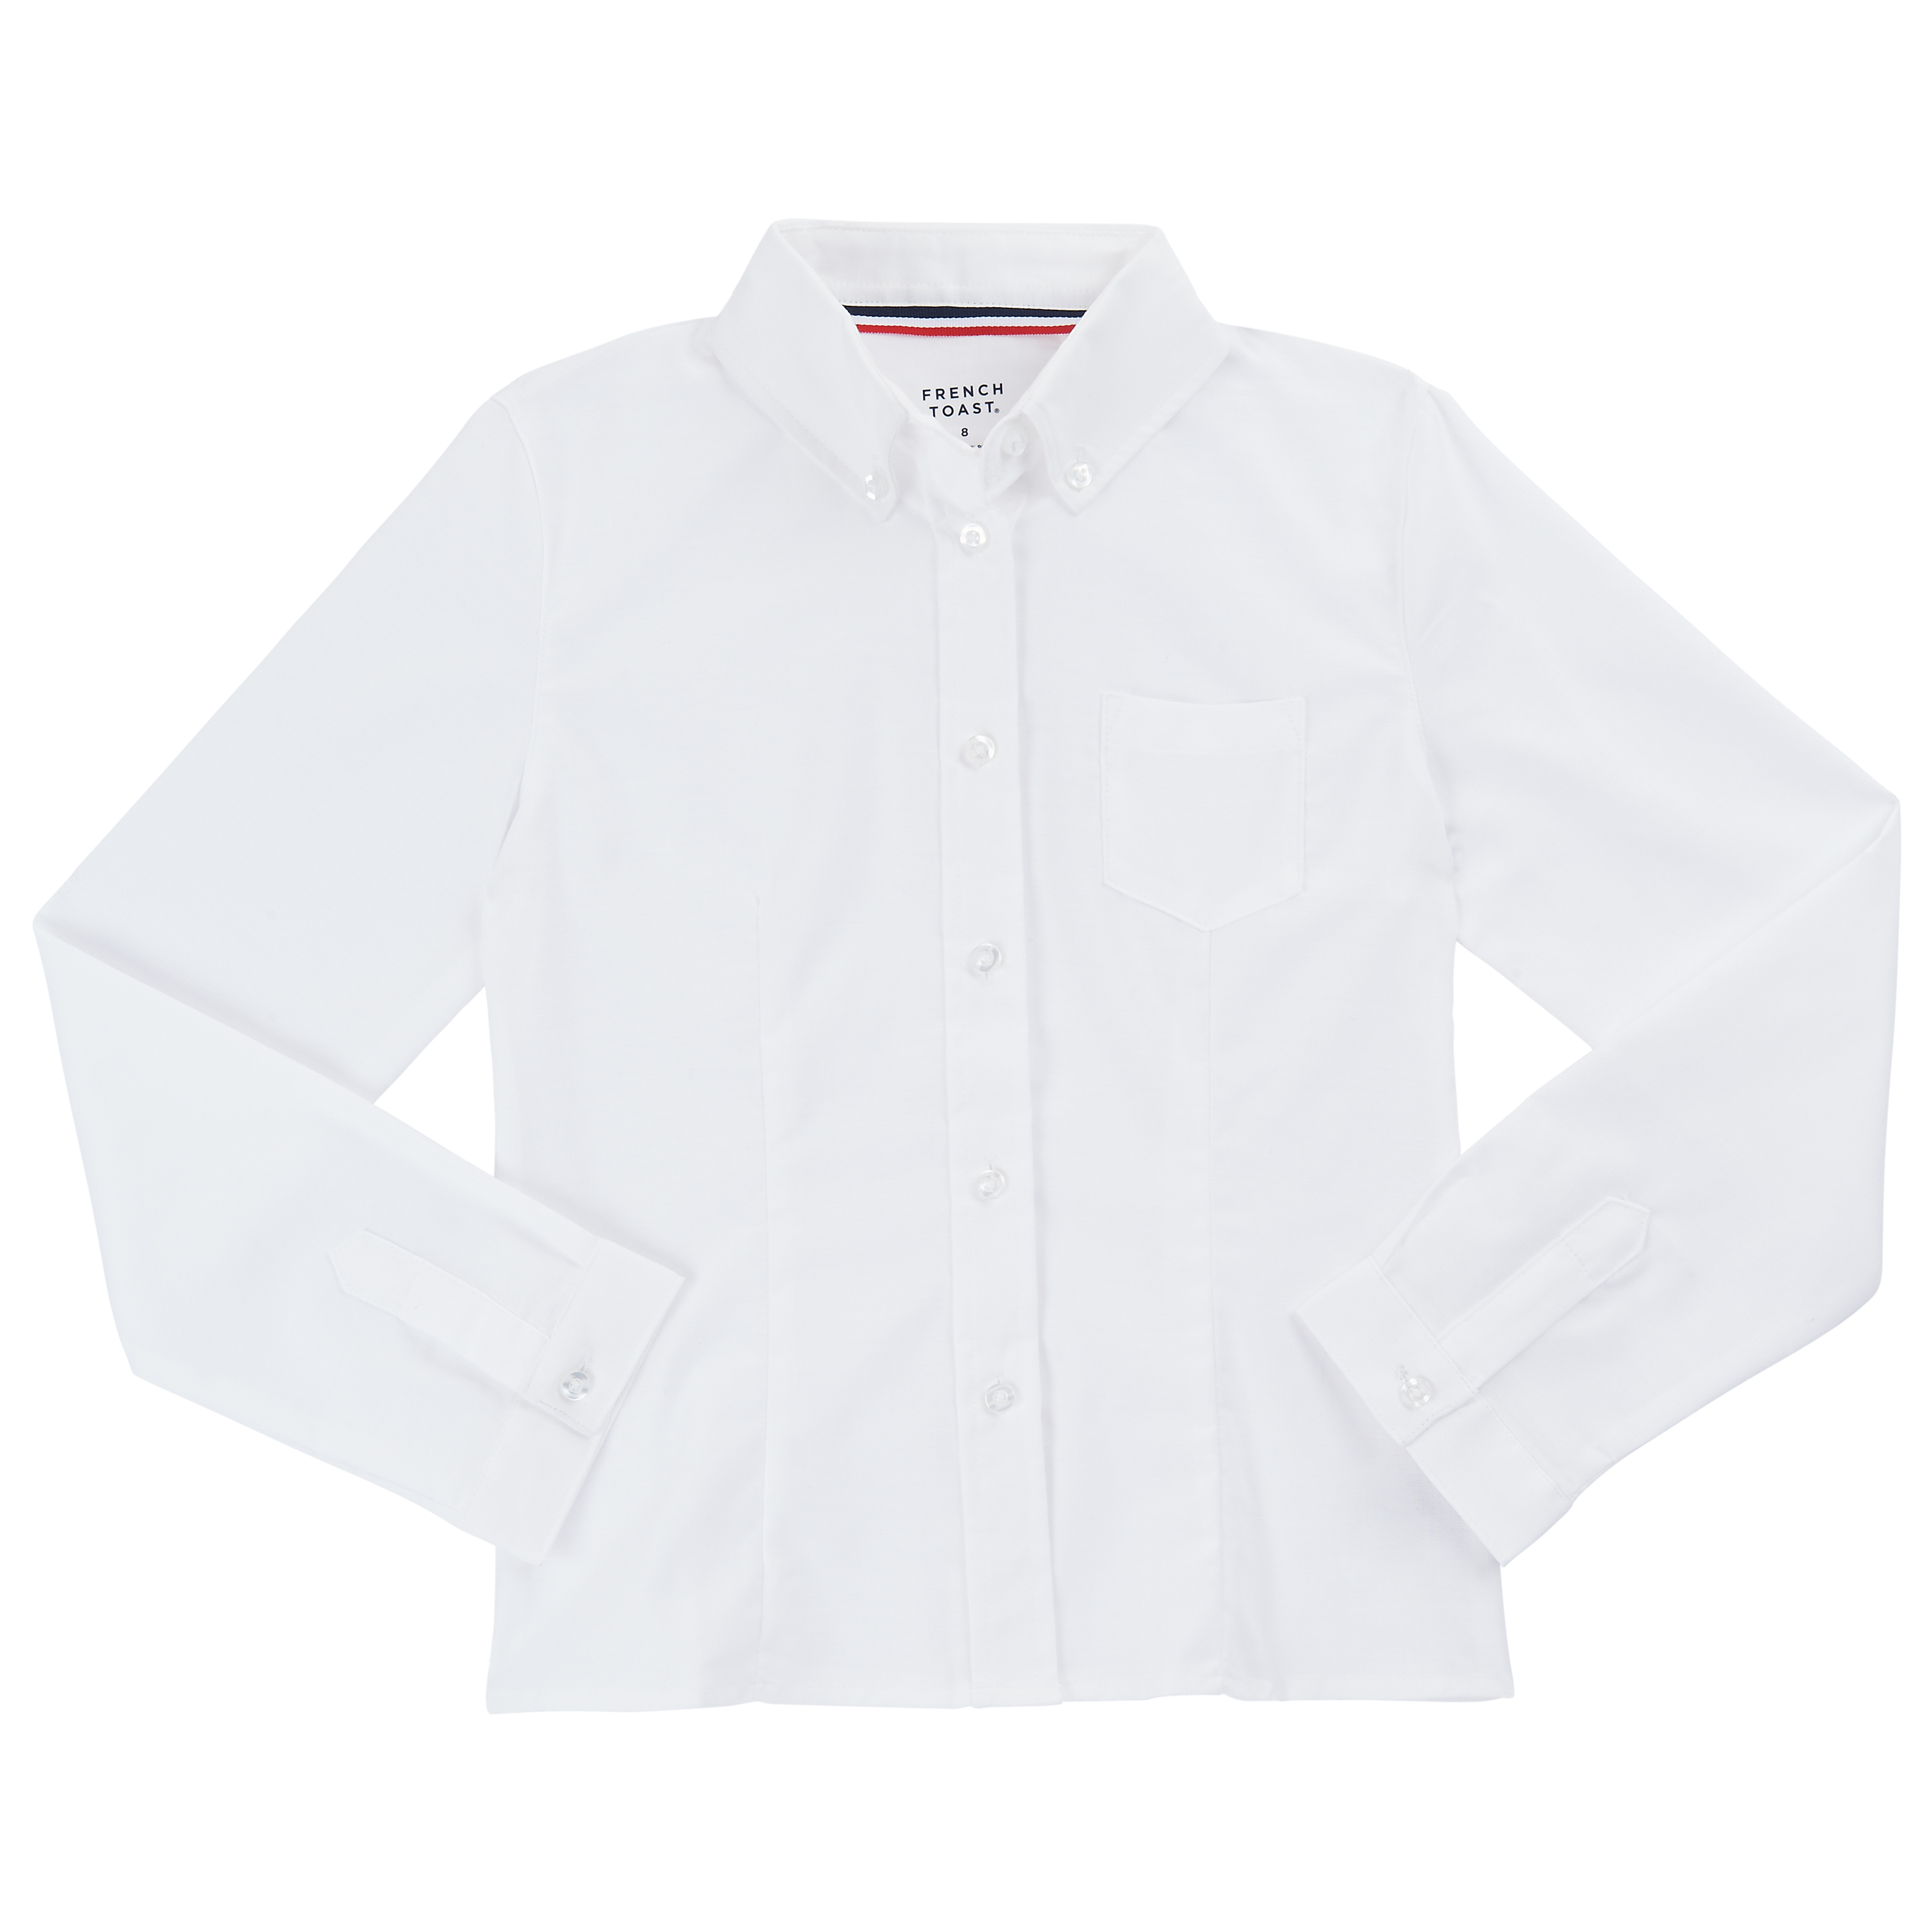 Boys Oxford-Long Sleeve Shirts -French Toast